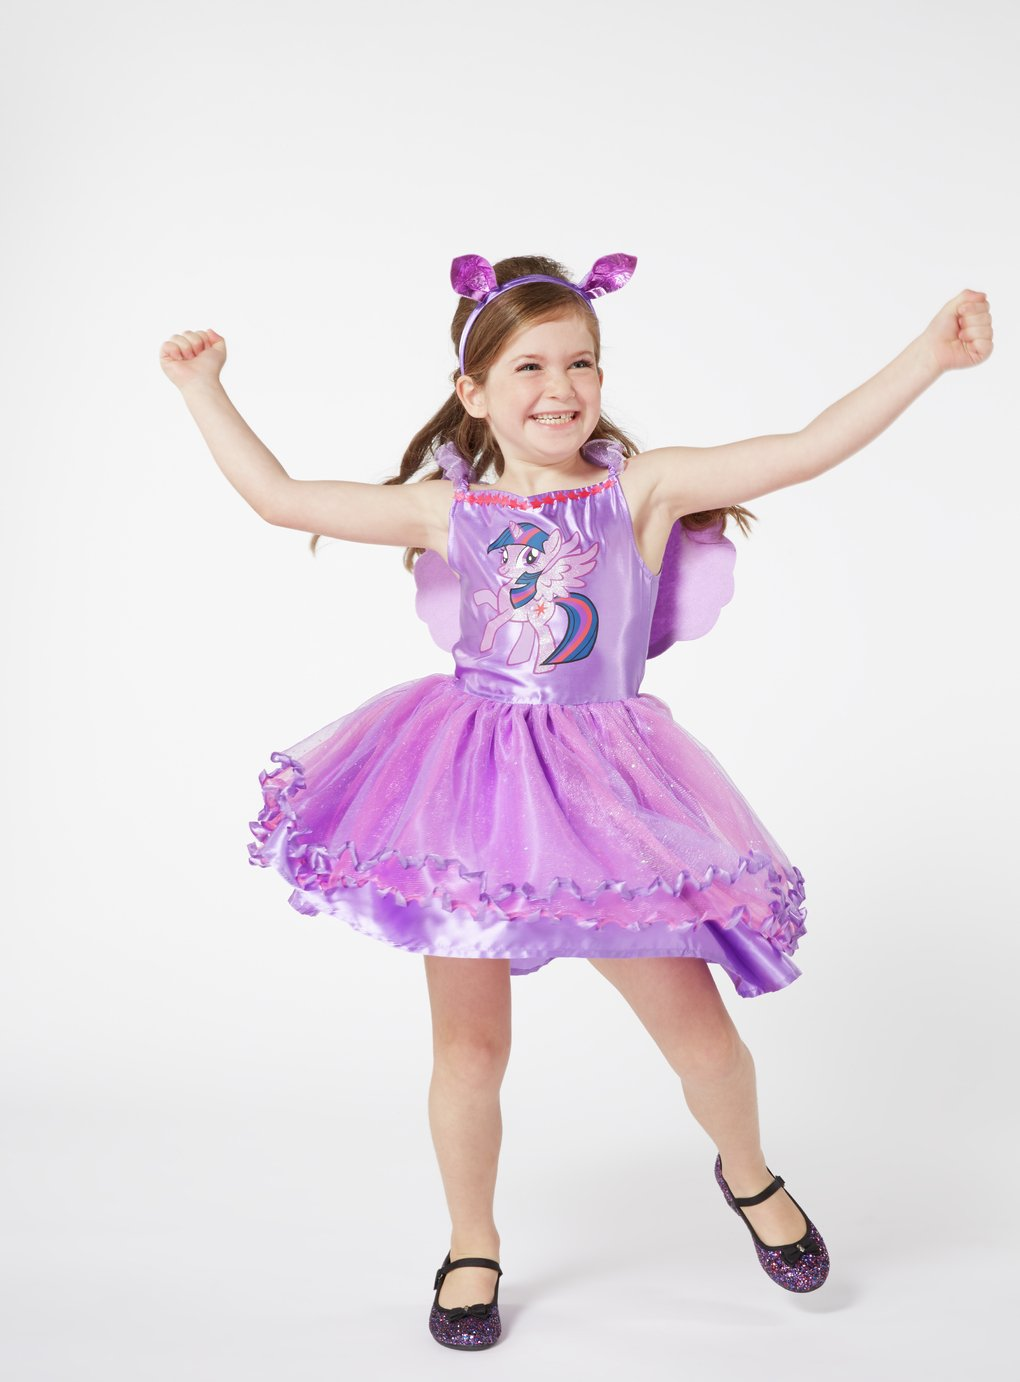 My Little Pony Twilight Sparkle Dress Up Costume - 3-4 Years